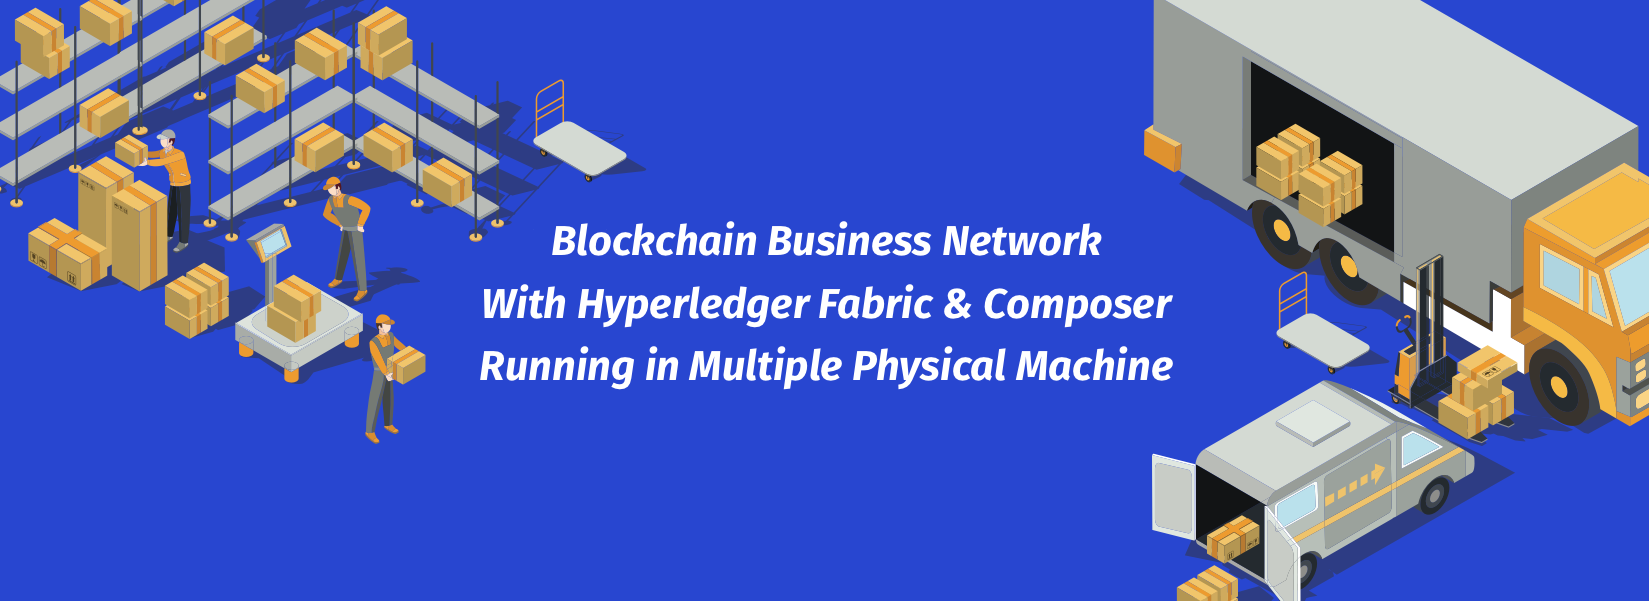 Setting up a Blockchain Business Network With Hyperledger Fabric & Composer Running in Multiple Physical Machine